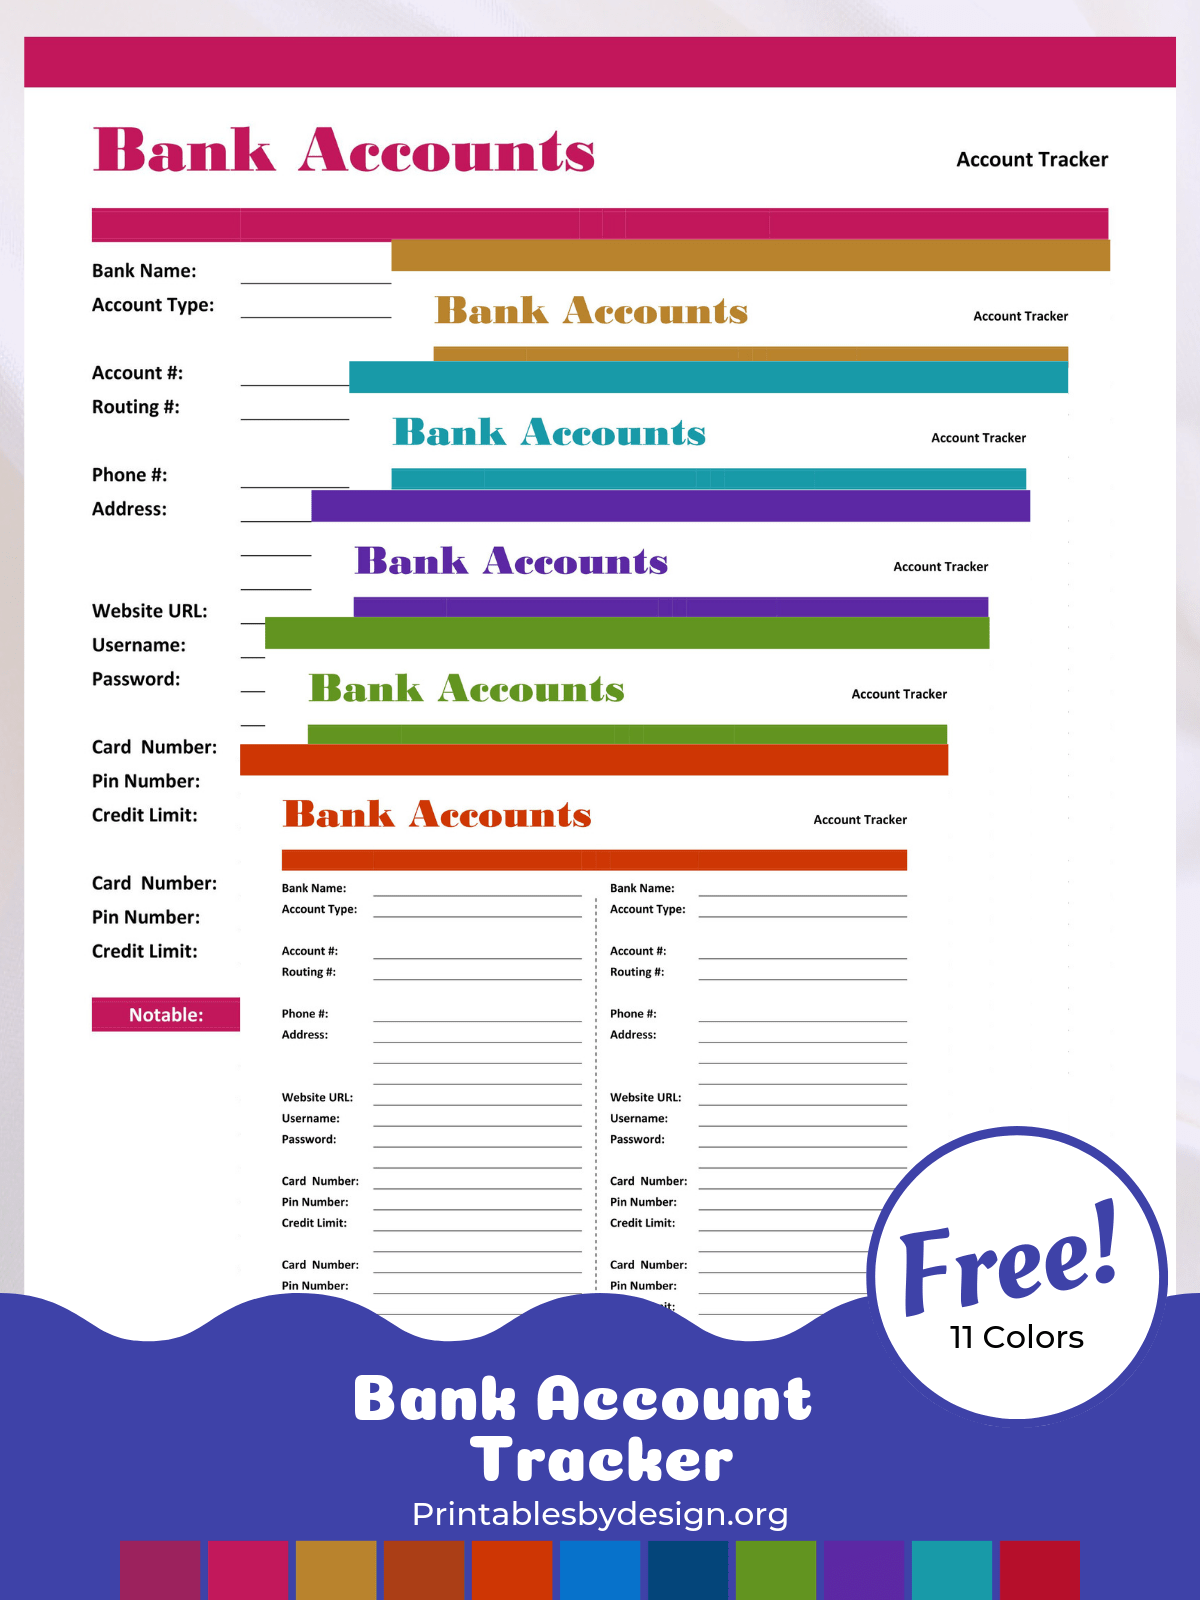 Bank Account Tracker Printables By Design